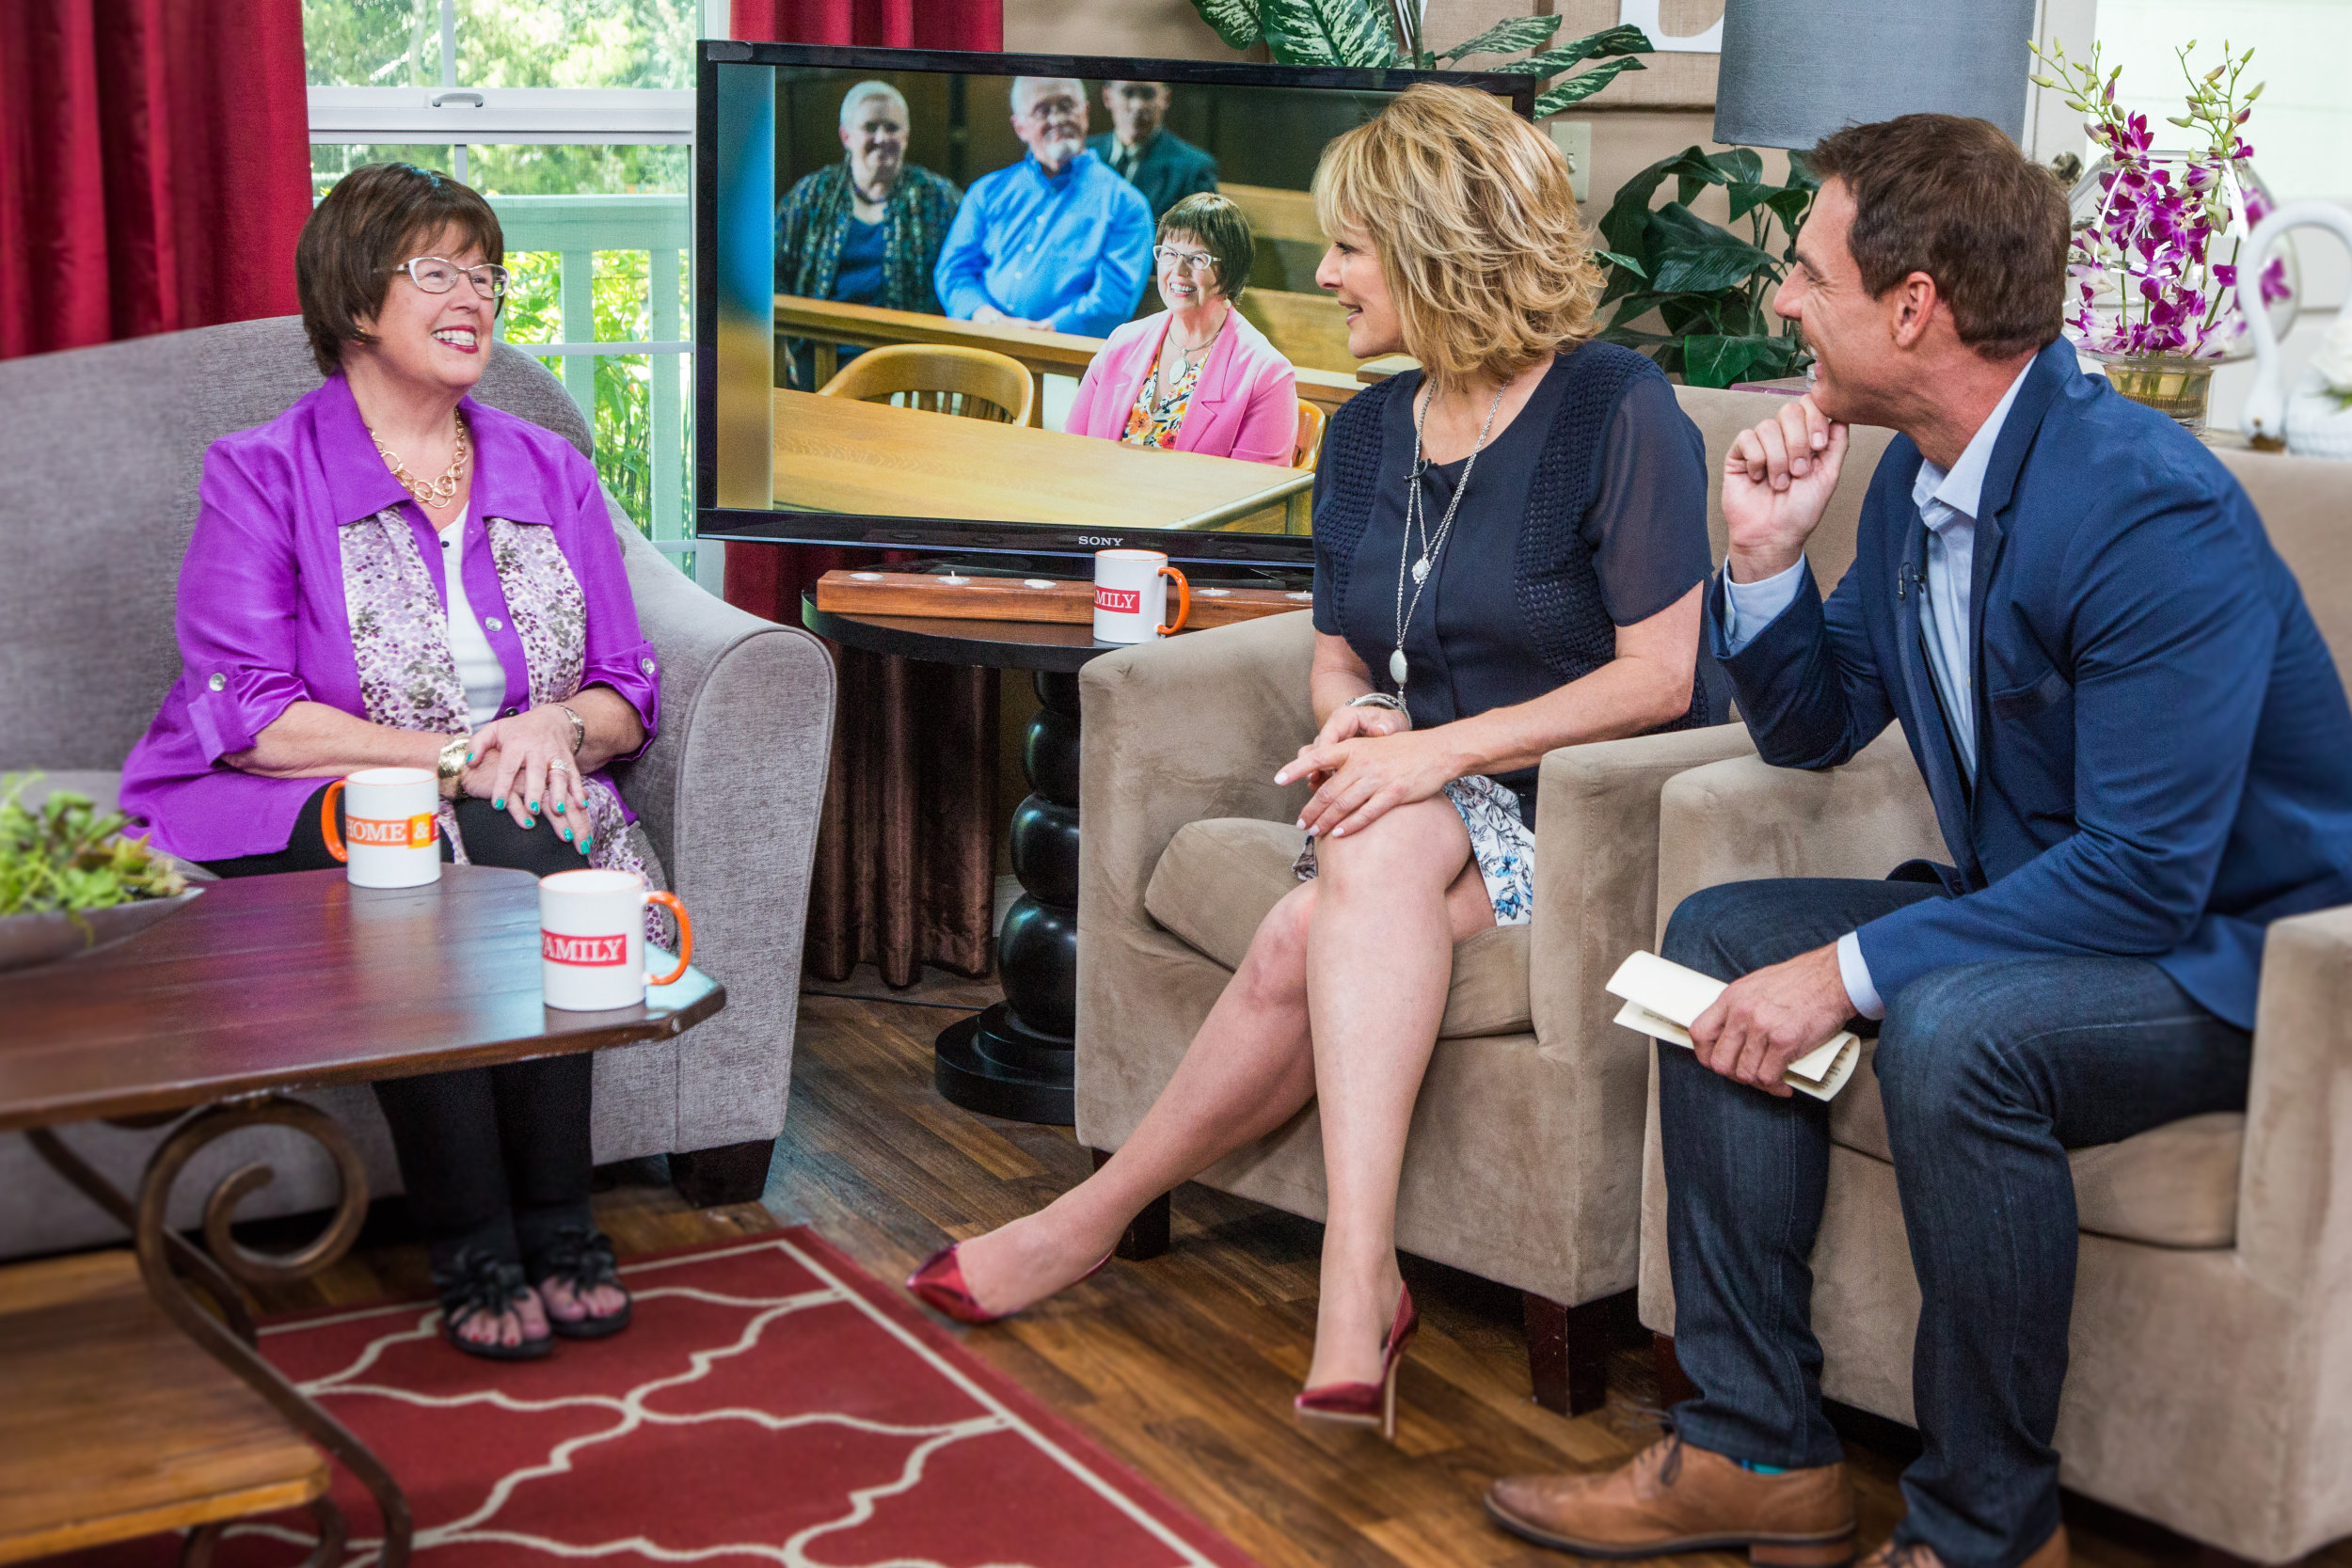 Hollywood steals home and family - Debbie Macomber Interview Home Family